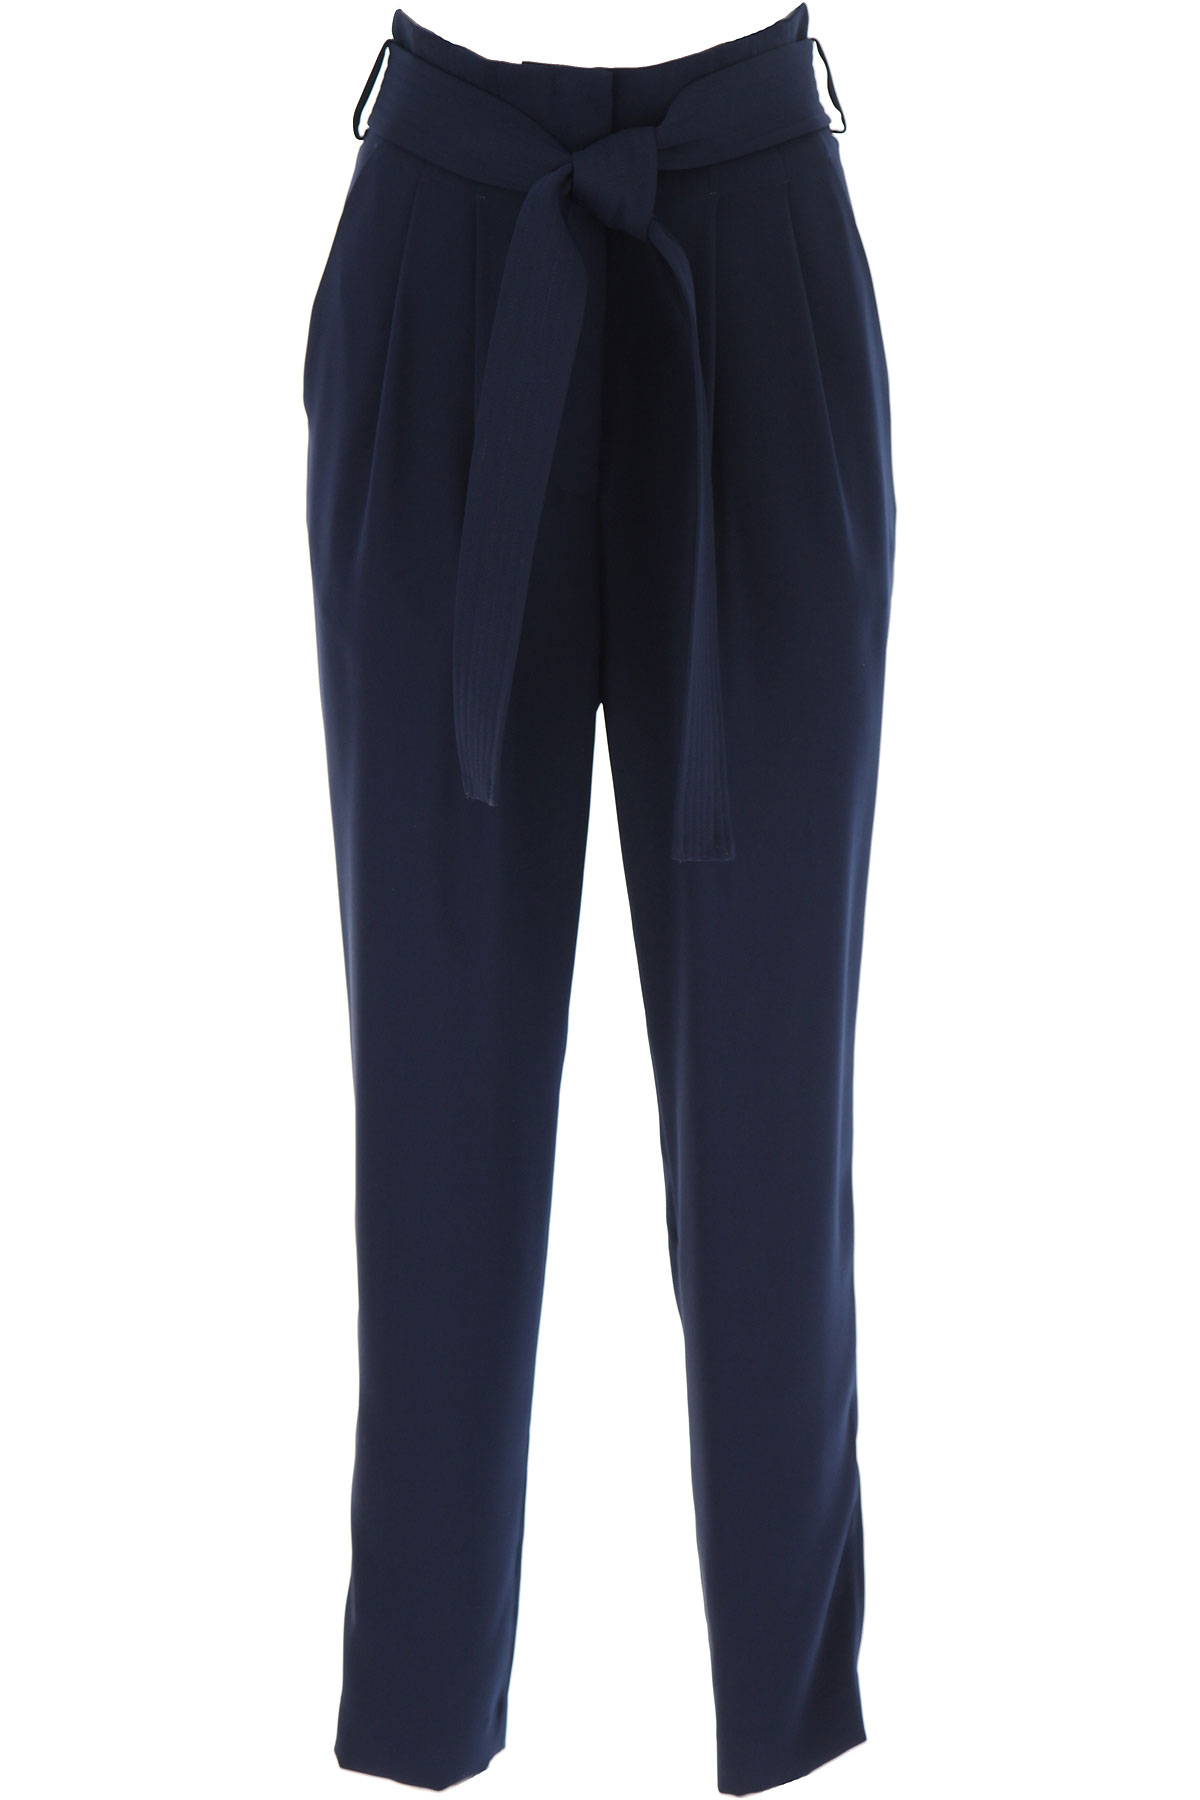 P.A.R.O.S.H. Pants for Women On Sale, Midnight Blue, polyester, 2019, 4 6